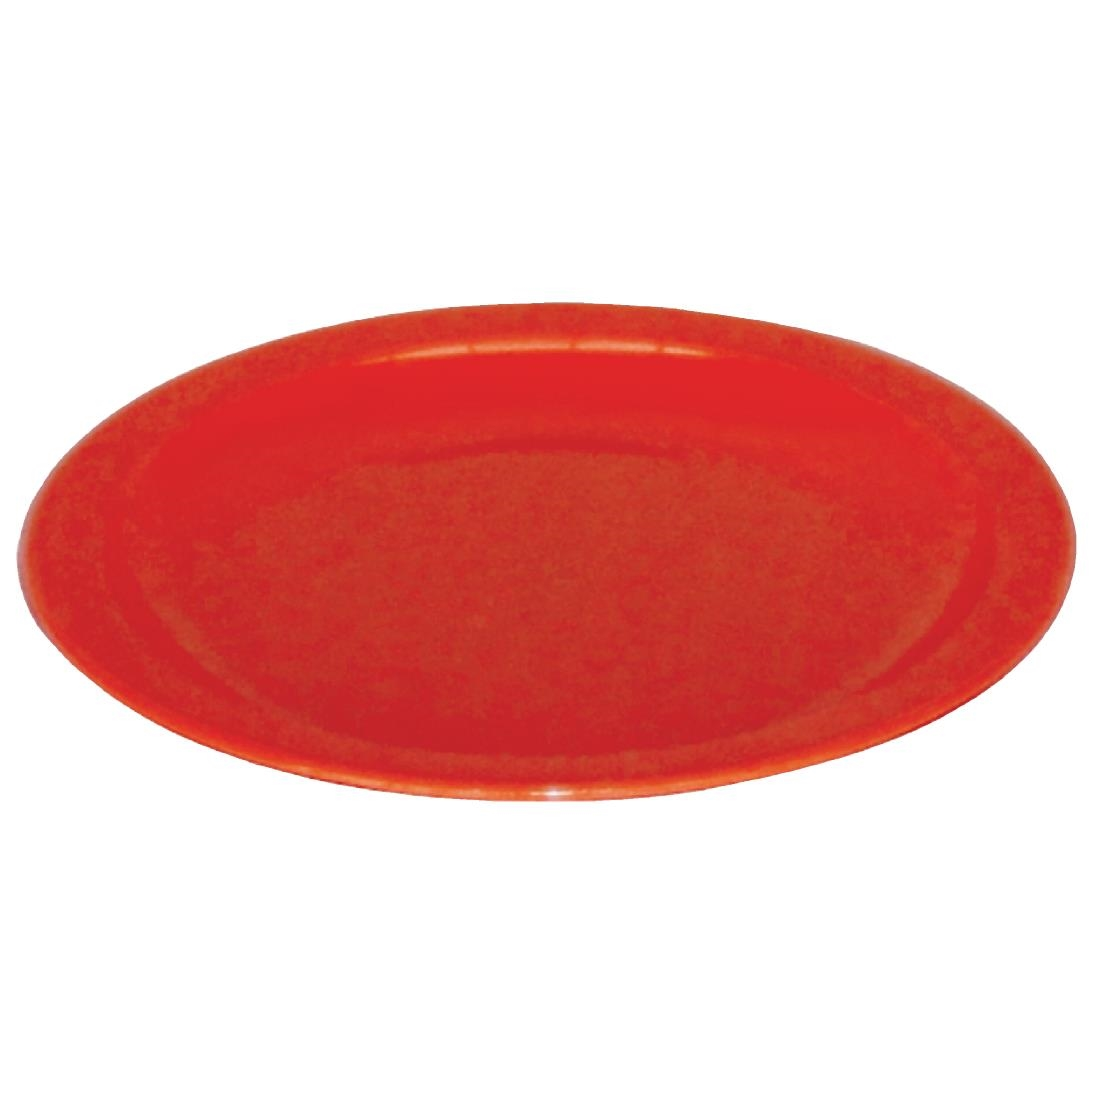 Plate - Red